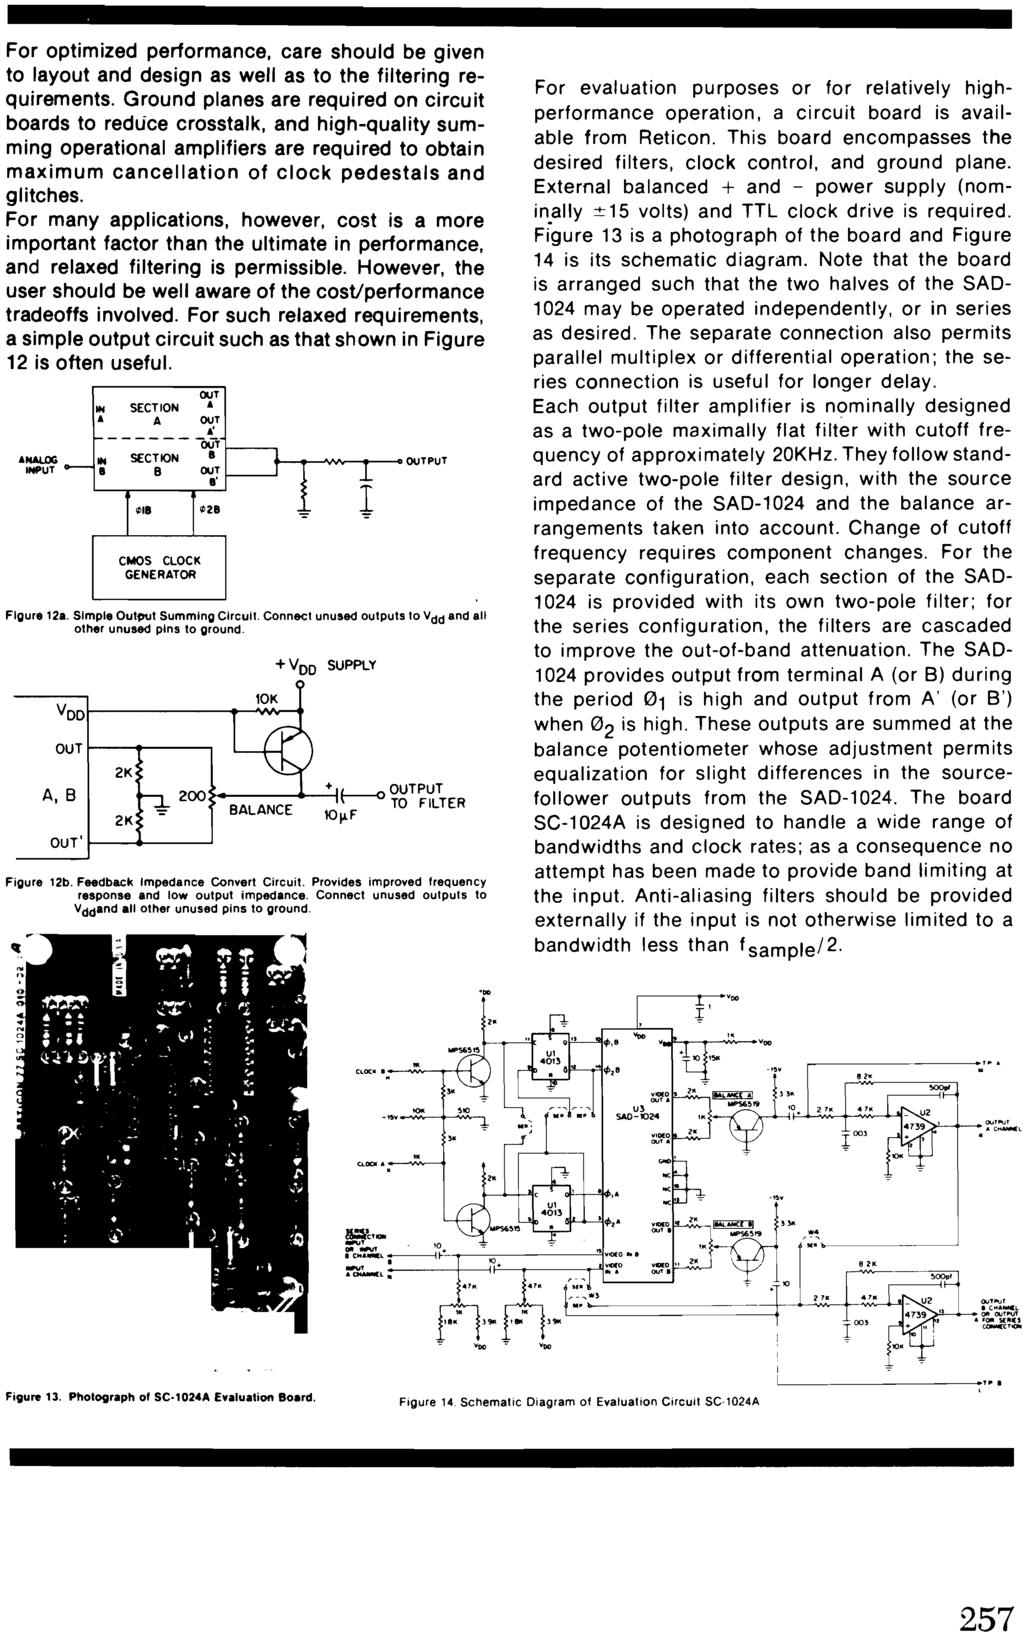 Electronic Music Circuits Pdf Ic 7805 Turnon Vr Circuit Diagram Diagrams For Optimized Performance Care Should Be Given To Layout And Design As Well